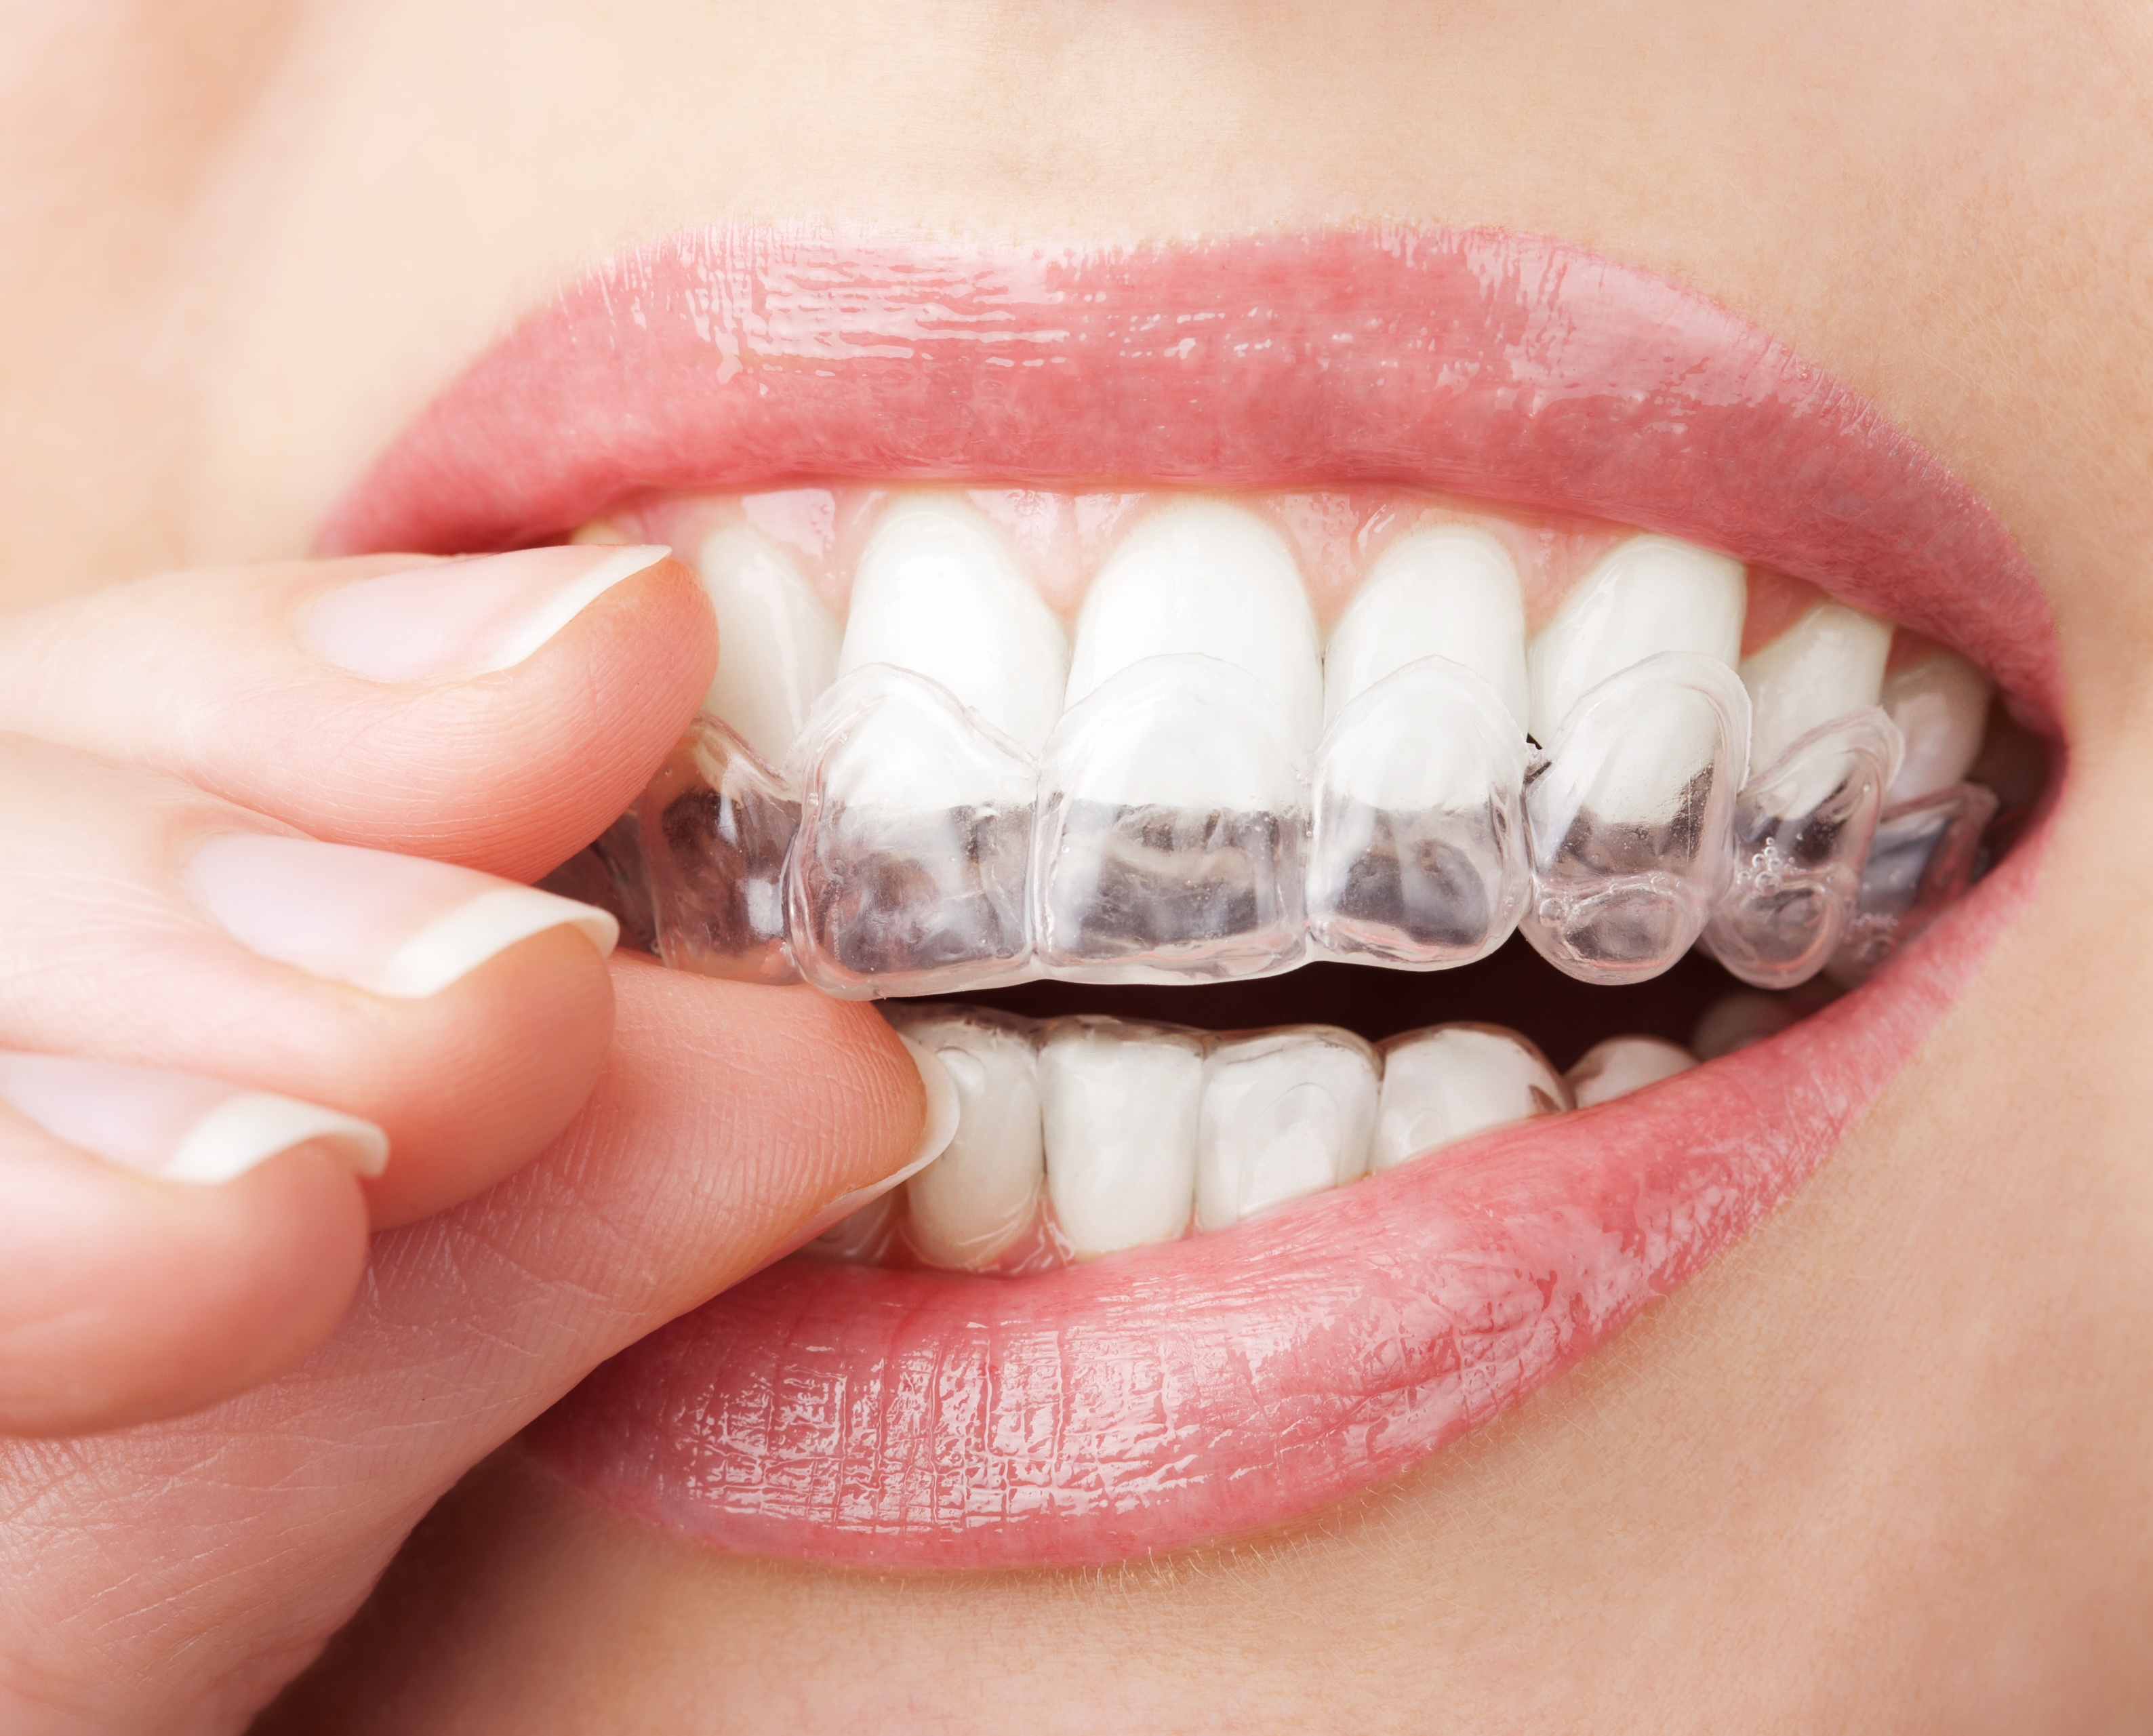 Where can I get San Marcos Invisalign?